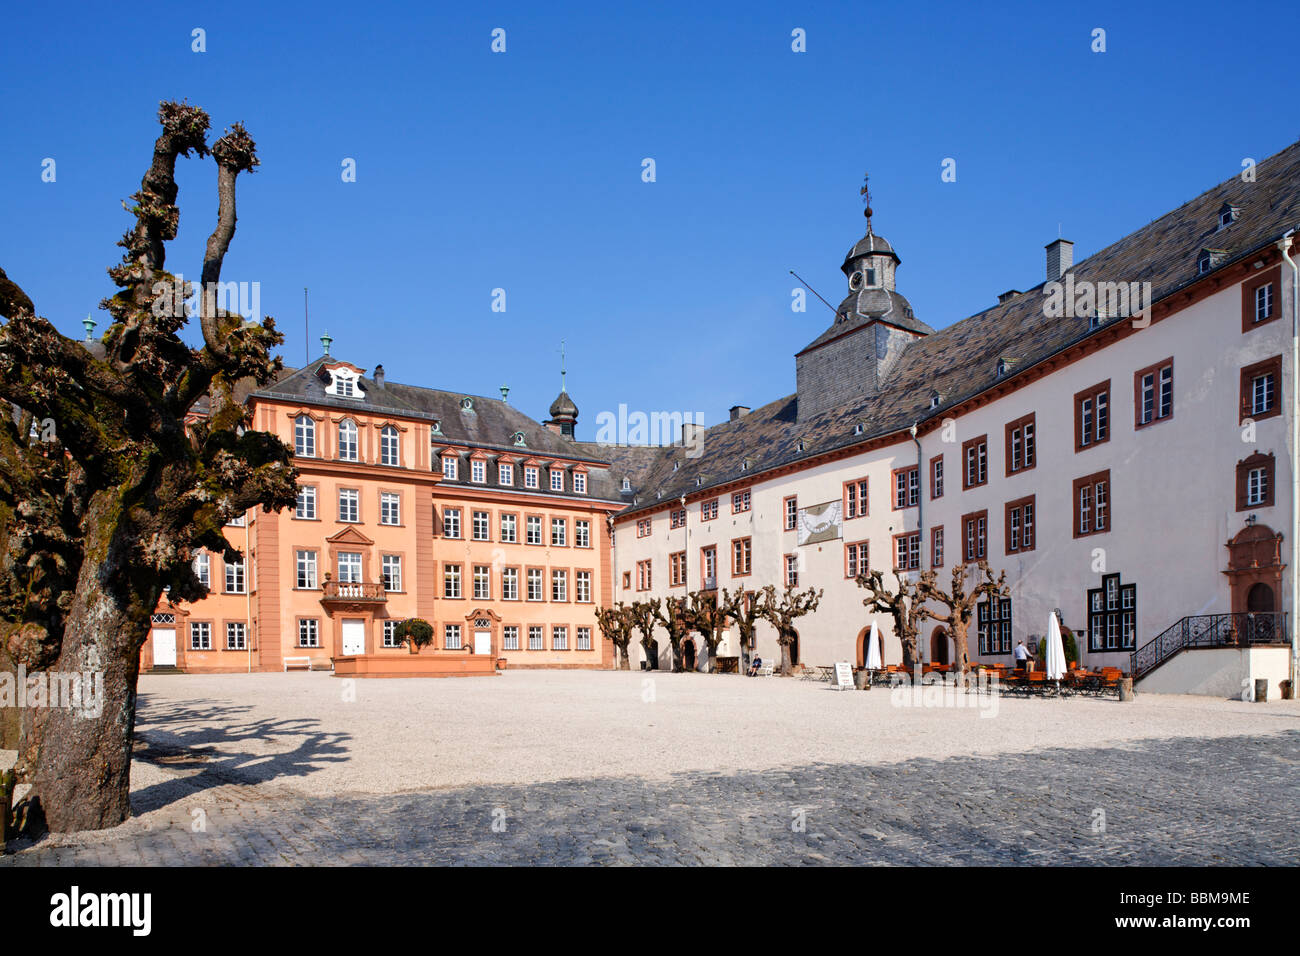 Castle square with north and central wing, Berleburg Castle, Bad Berleburg, district of Siegen-Wittgenstein, Rothaarsteig, - Stock Image